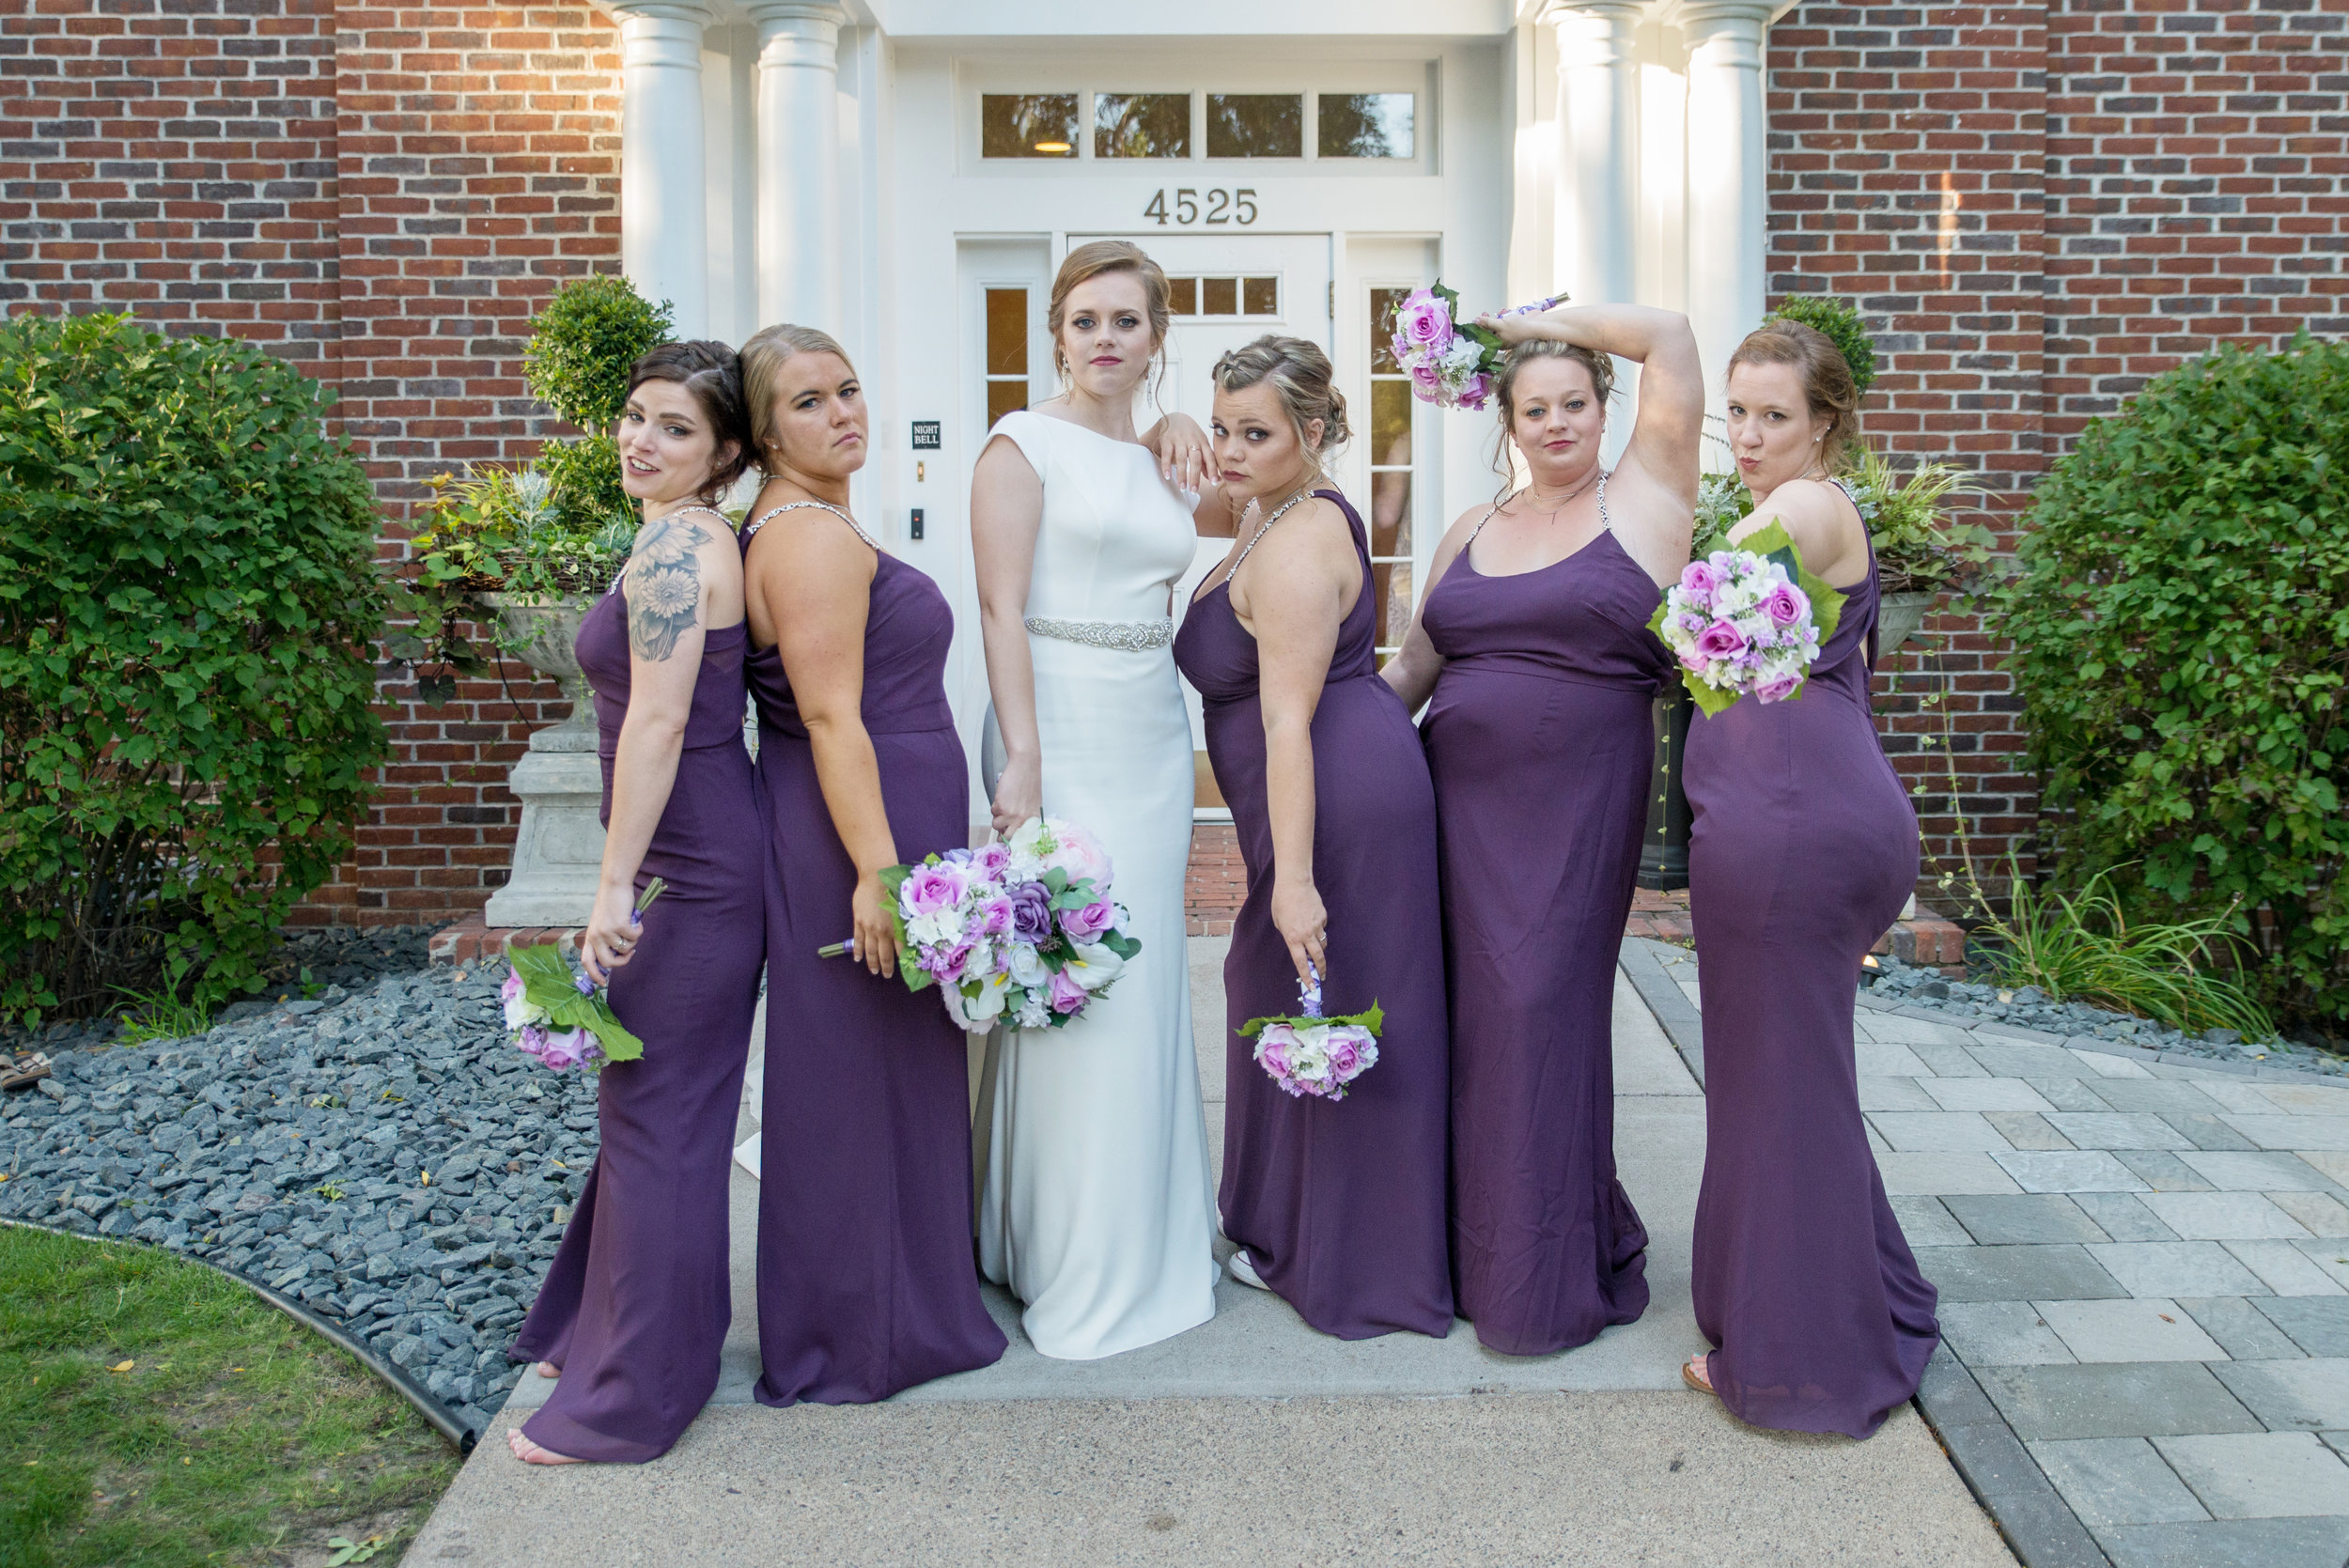 Breanna and her bridesmaids showing some attitude - we'll always get shots of you with your chosen bridal party members, but can split up bridal party shots before and after the ceremony if you opt out of a first look!